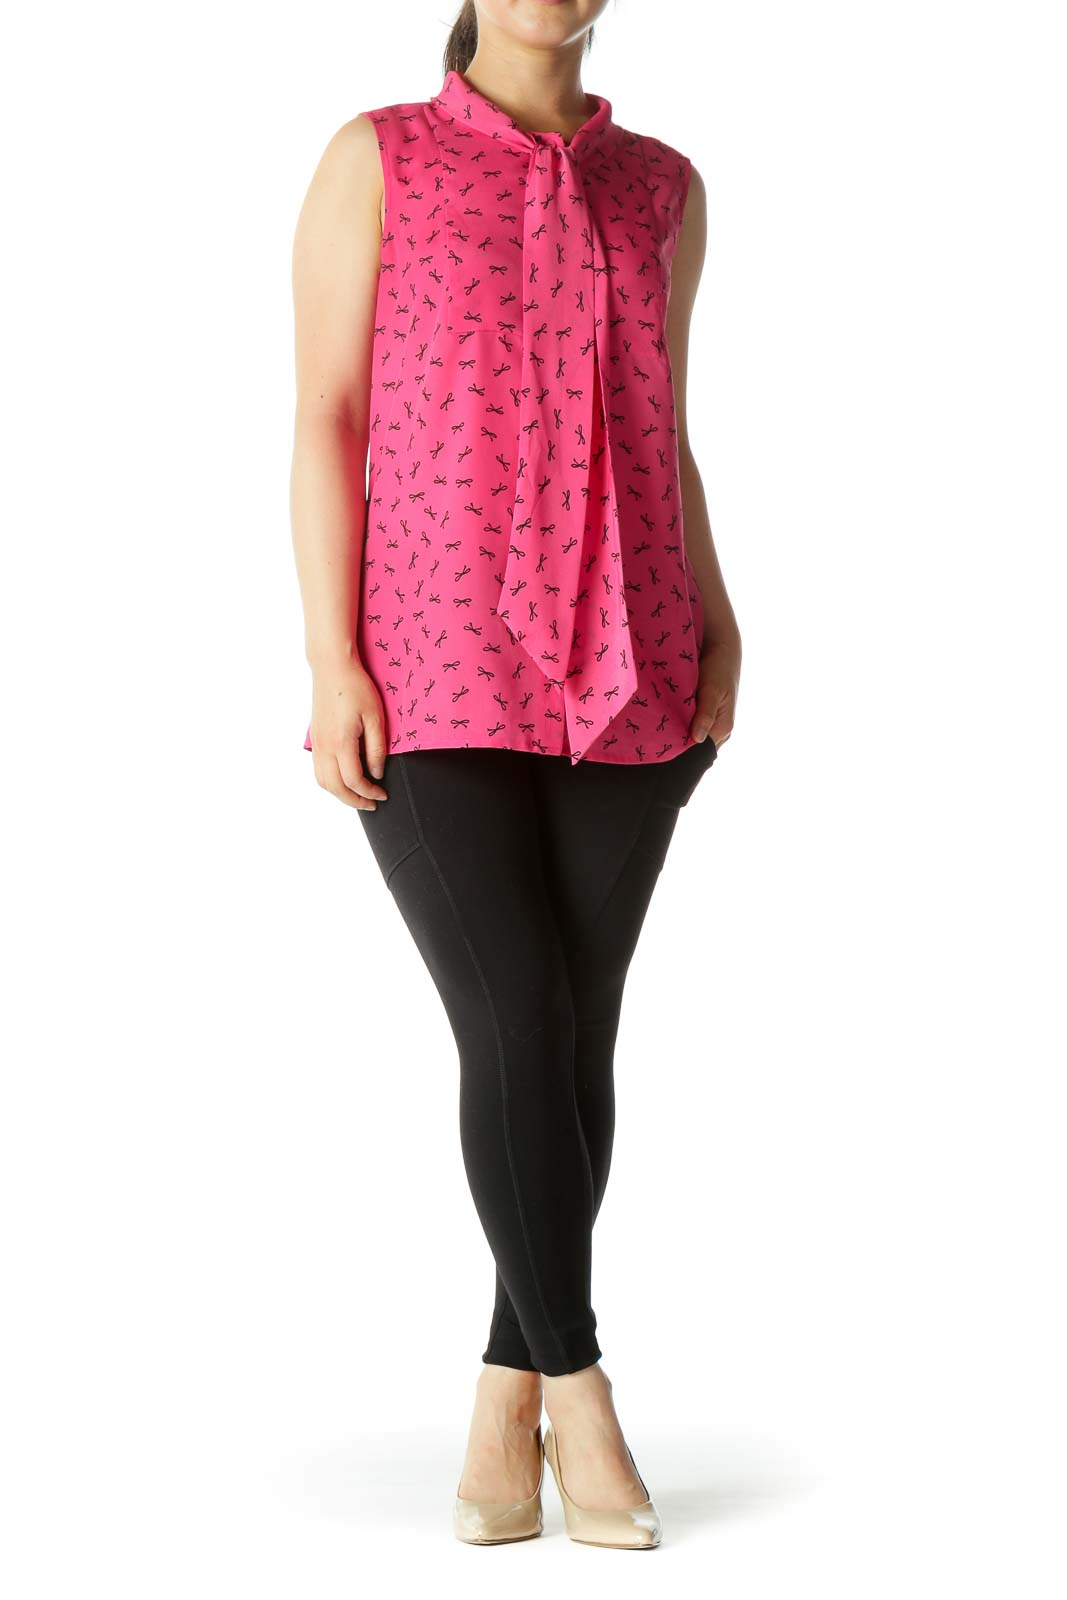 Pink Sleeveless Tunic with Bow Pattern